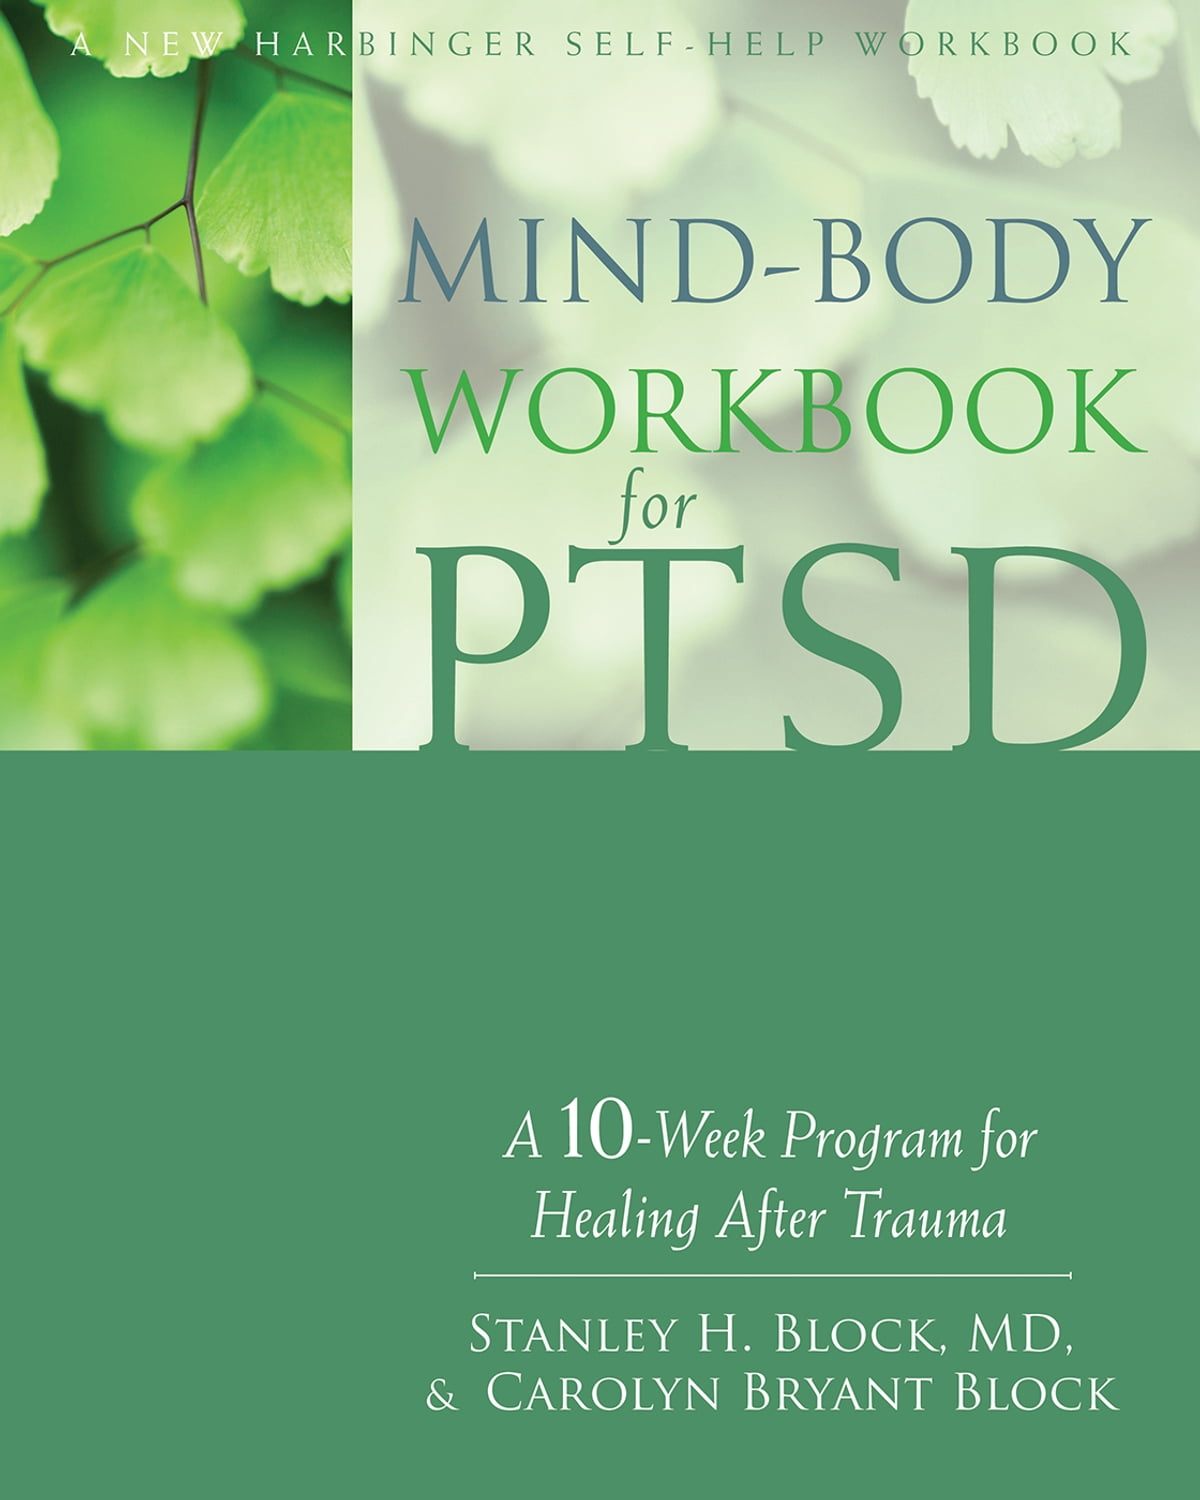 Mind-Body Workbook for PTSD eBook by Stanley H. Block, MD ...